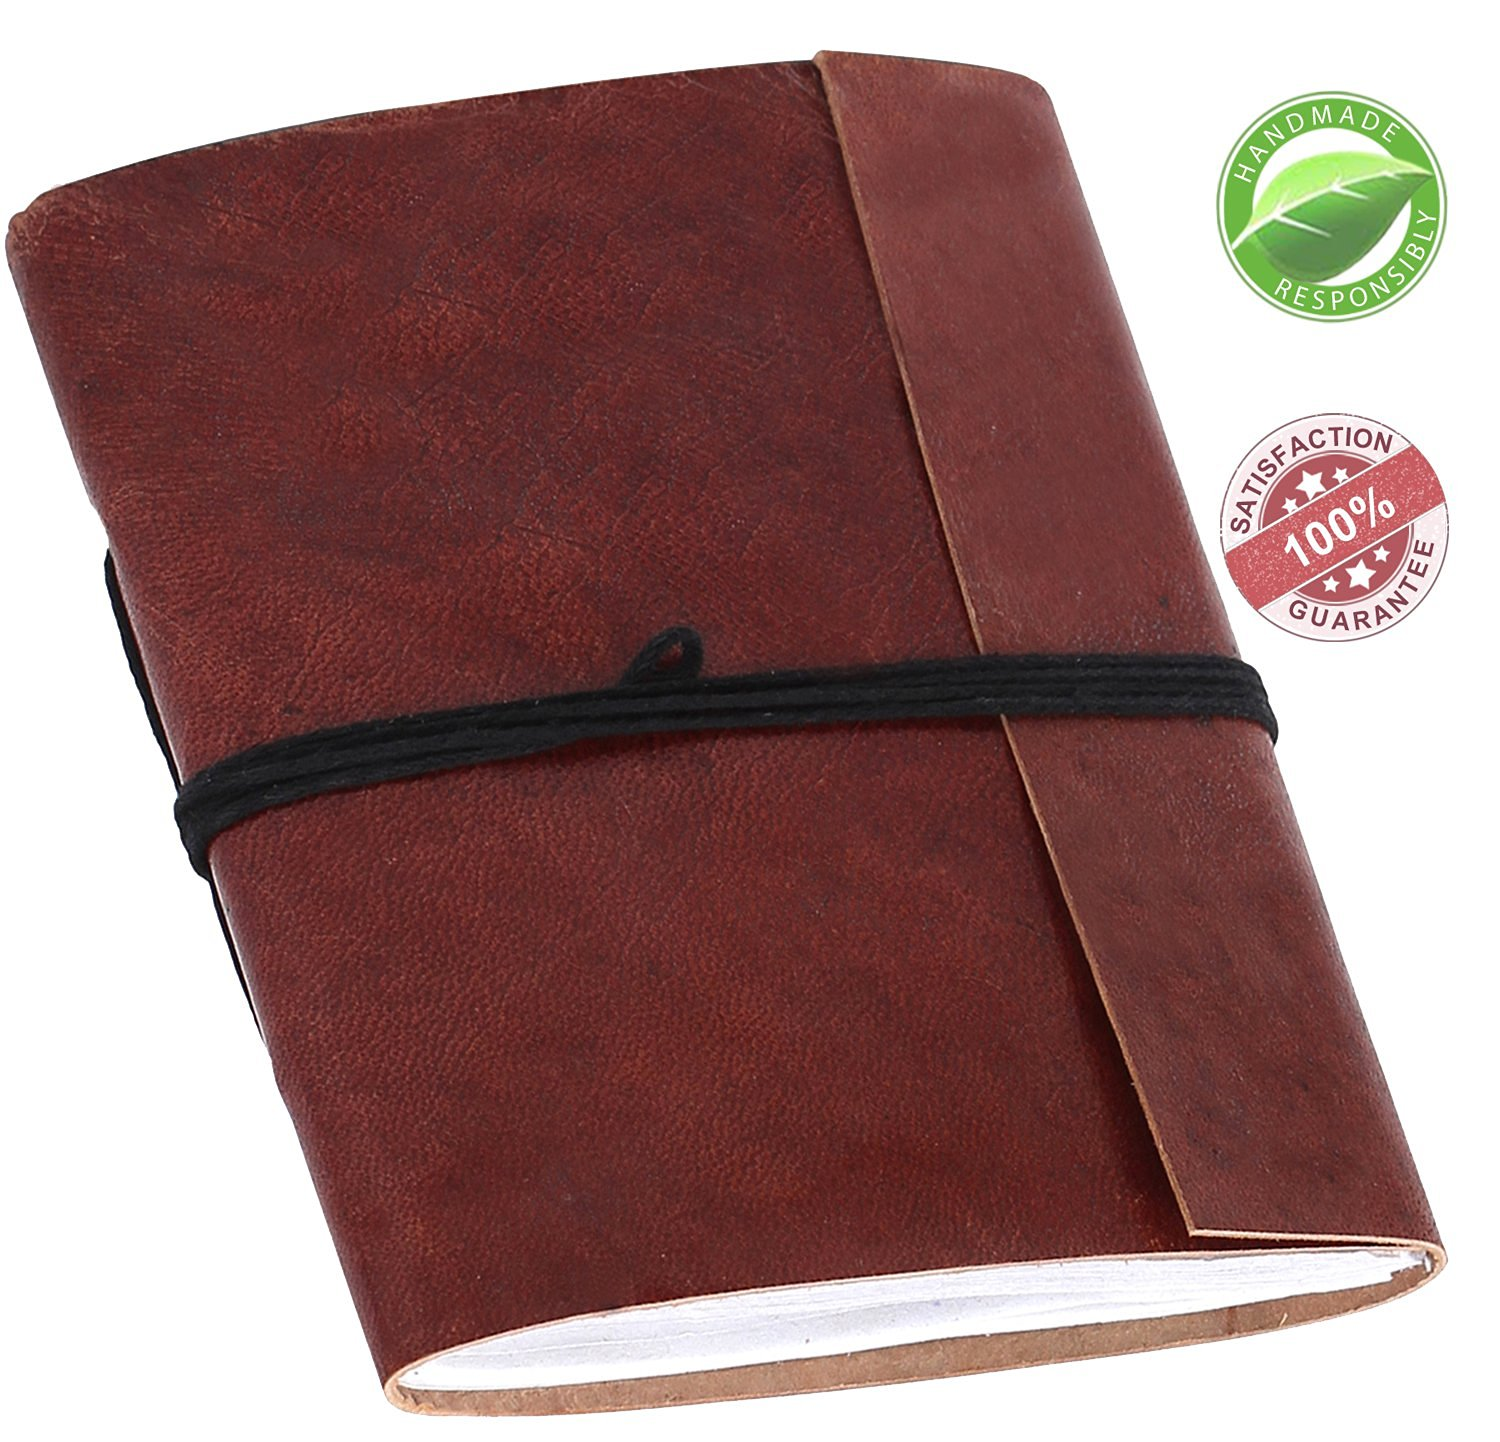 Leather Journal Refillable in Brown - Writing Diary/Notebook - A6 Vintage Genuine/Sketchbook/Scrapbook/Poetry Ethnic Travel Diary to Write in